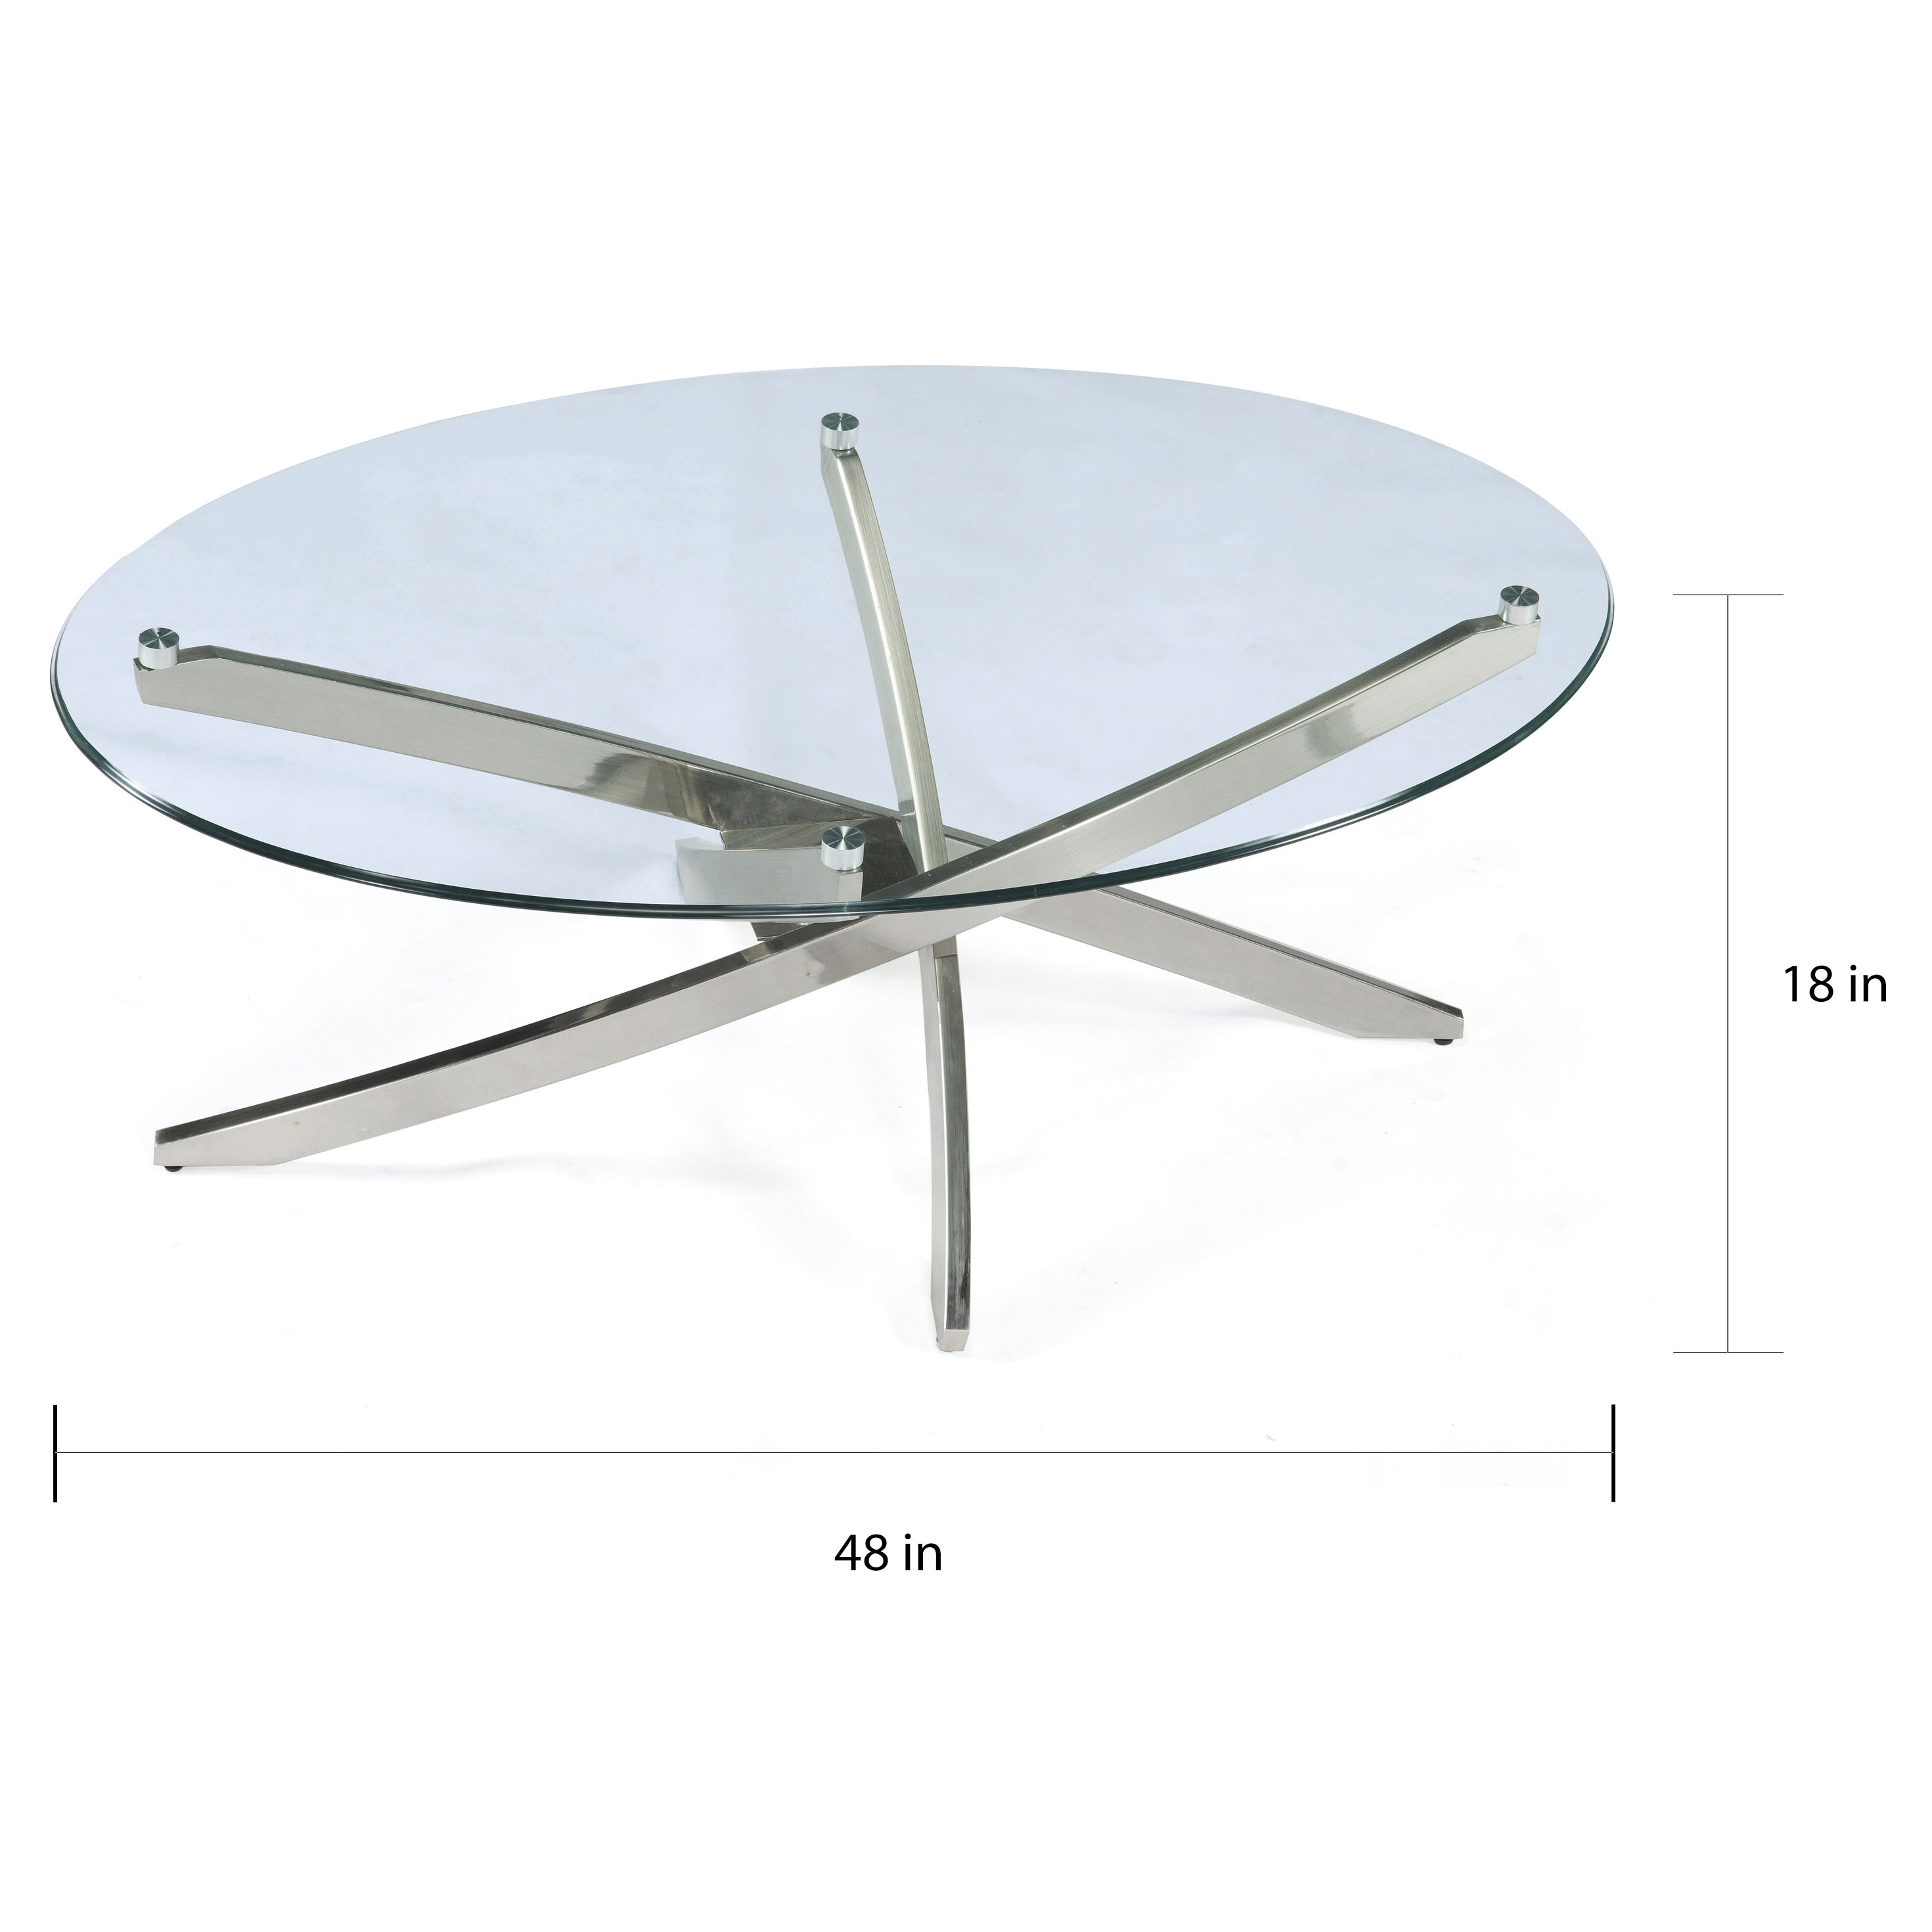 Zila Contemporary Brushed Nickel Oval Coffee Table With Glass Top On Sale Overstock 8033692